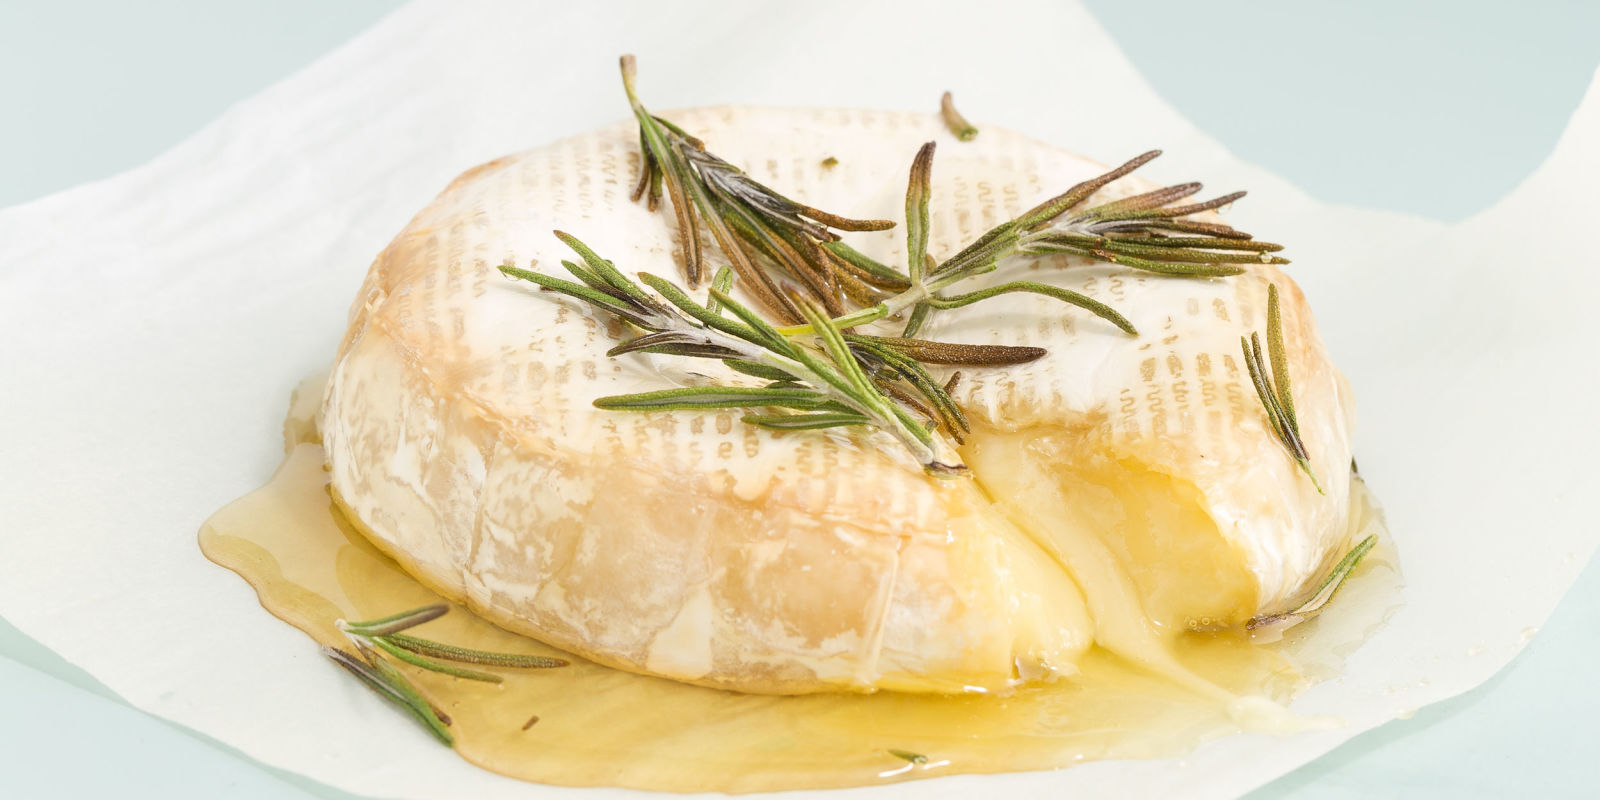 11 Easy Baked Brie Recipes-How to Make Baked Brie Cheese ...